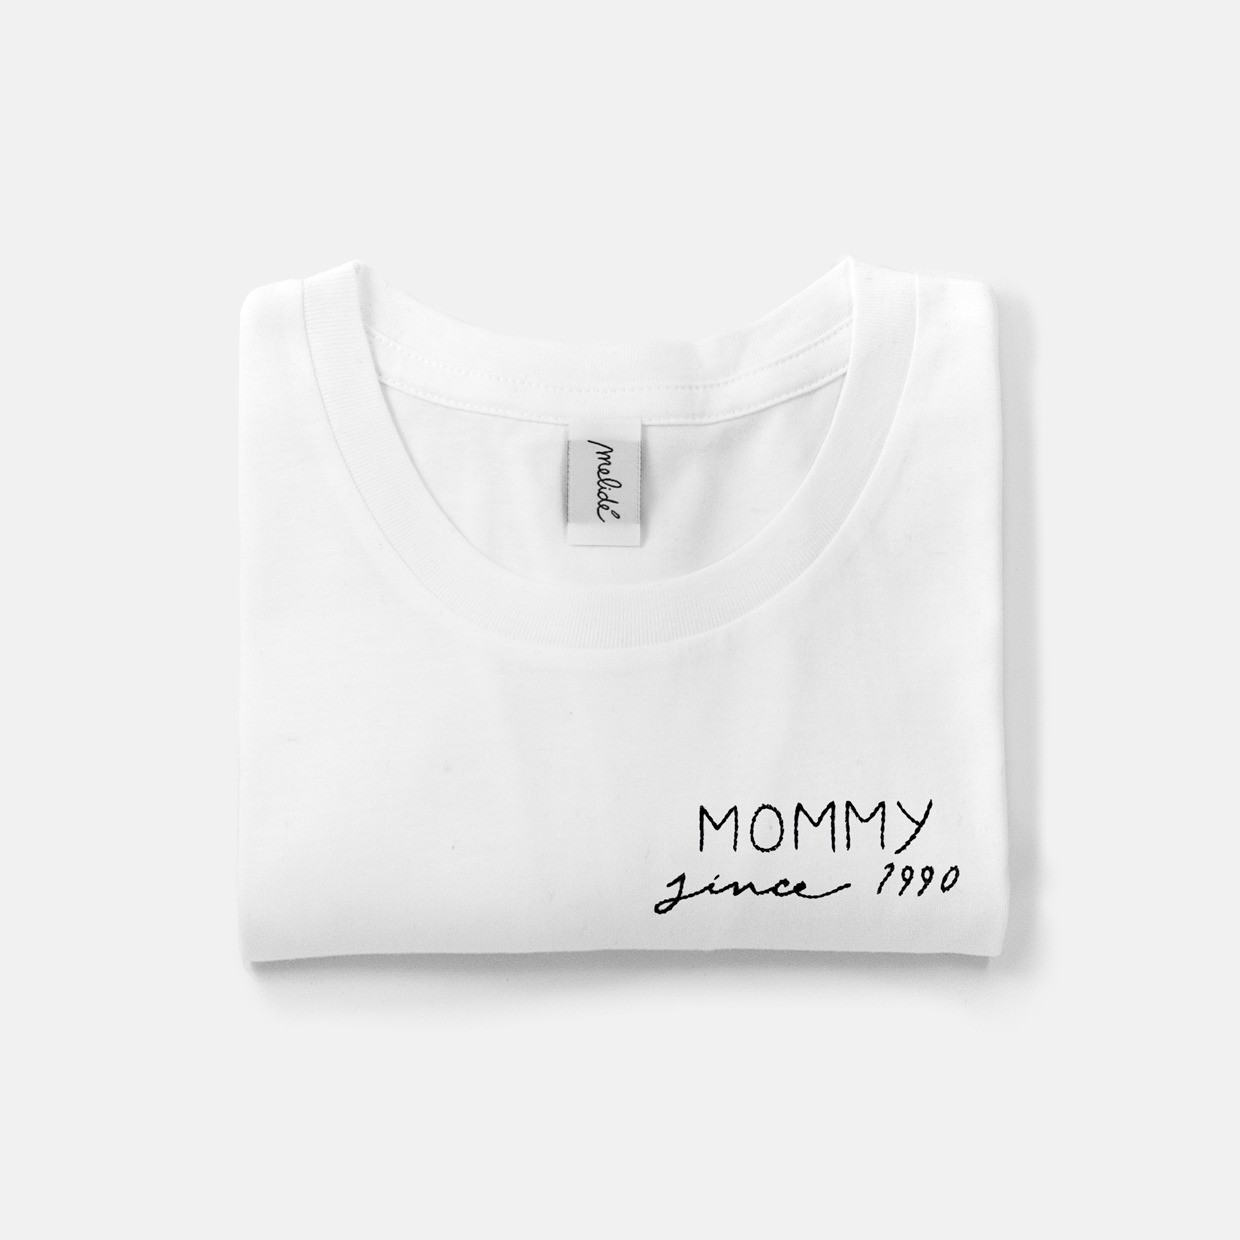 The MOMMY SINCE ultimate woman tee